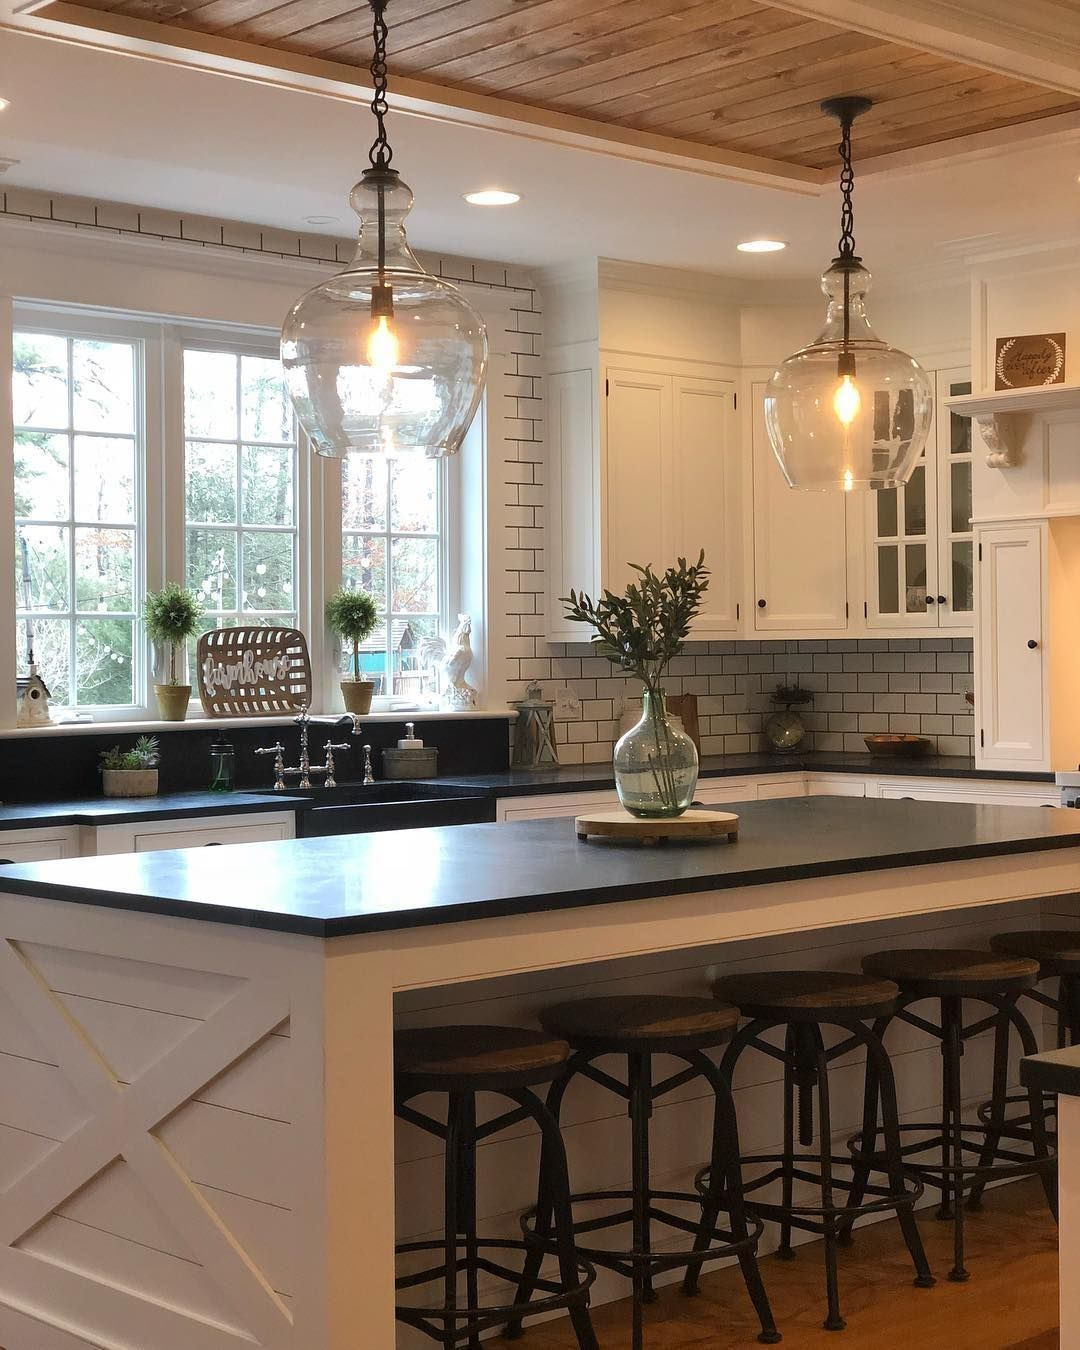 20 captivating farmhouse lighting design ideas to on best farmhouse kitchen decor ideas and remodel create your dreams id=75400